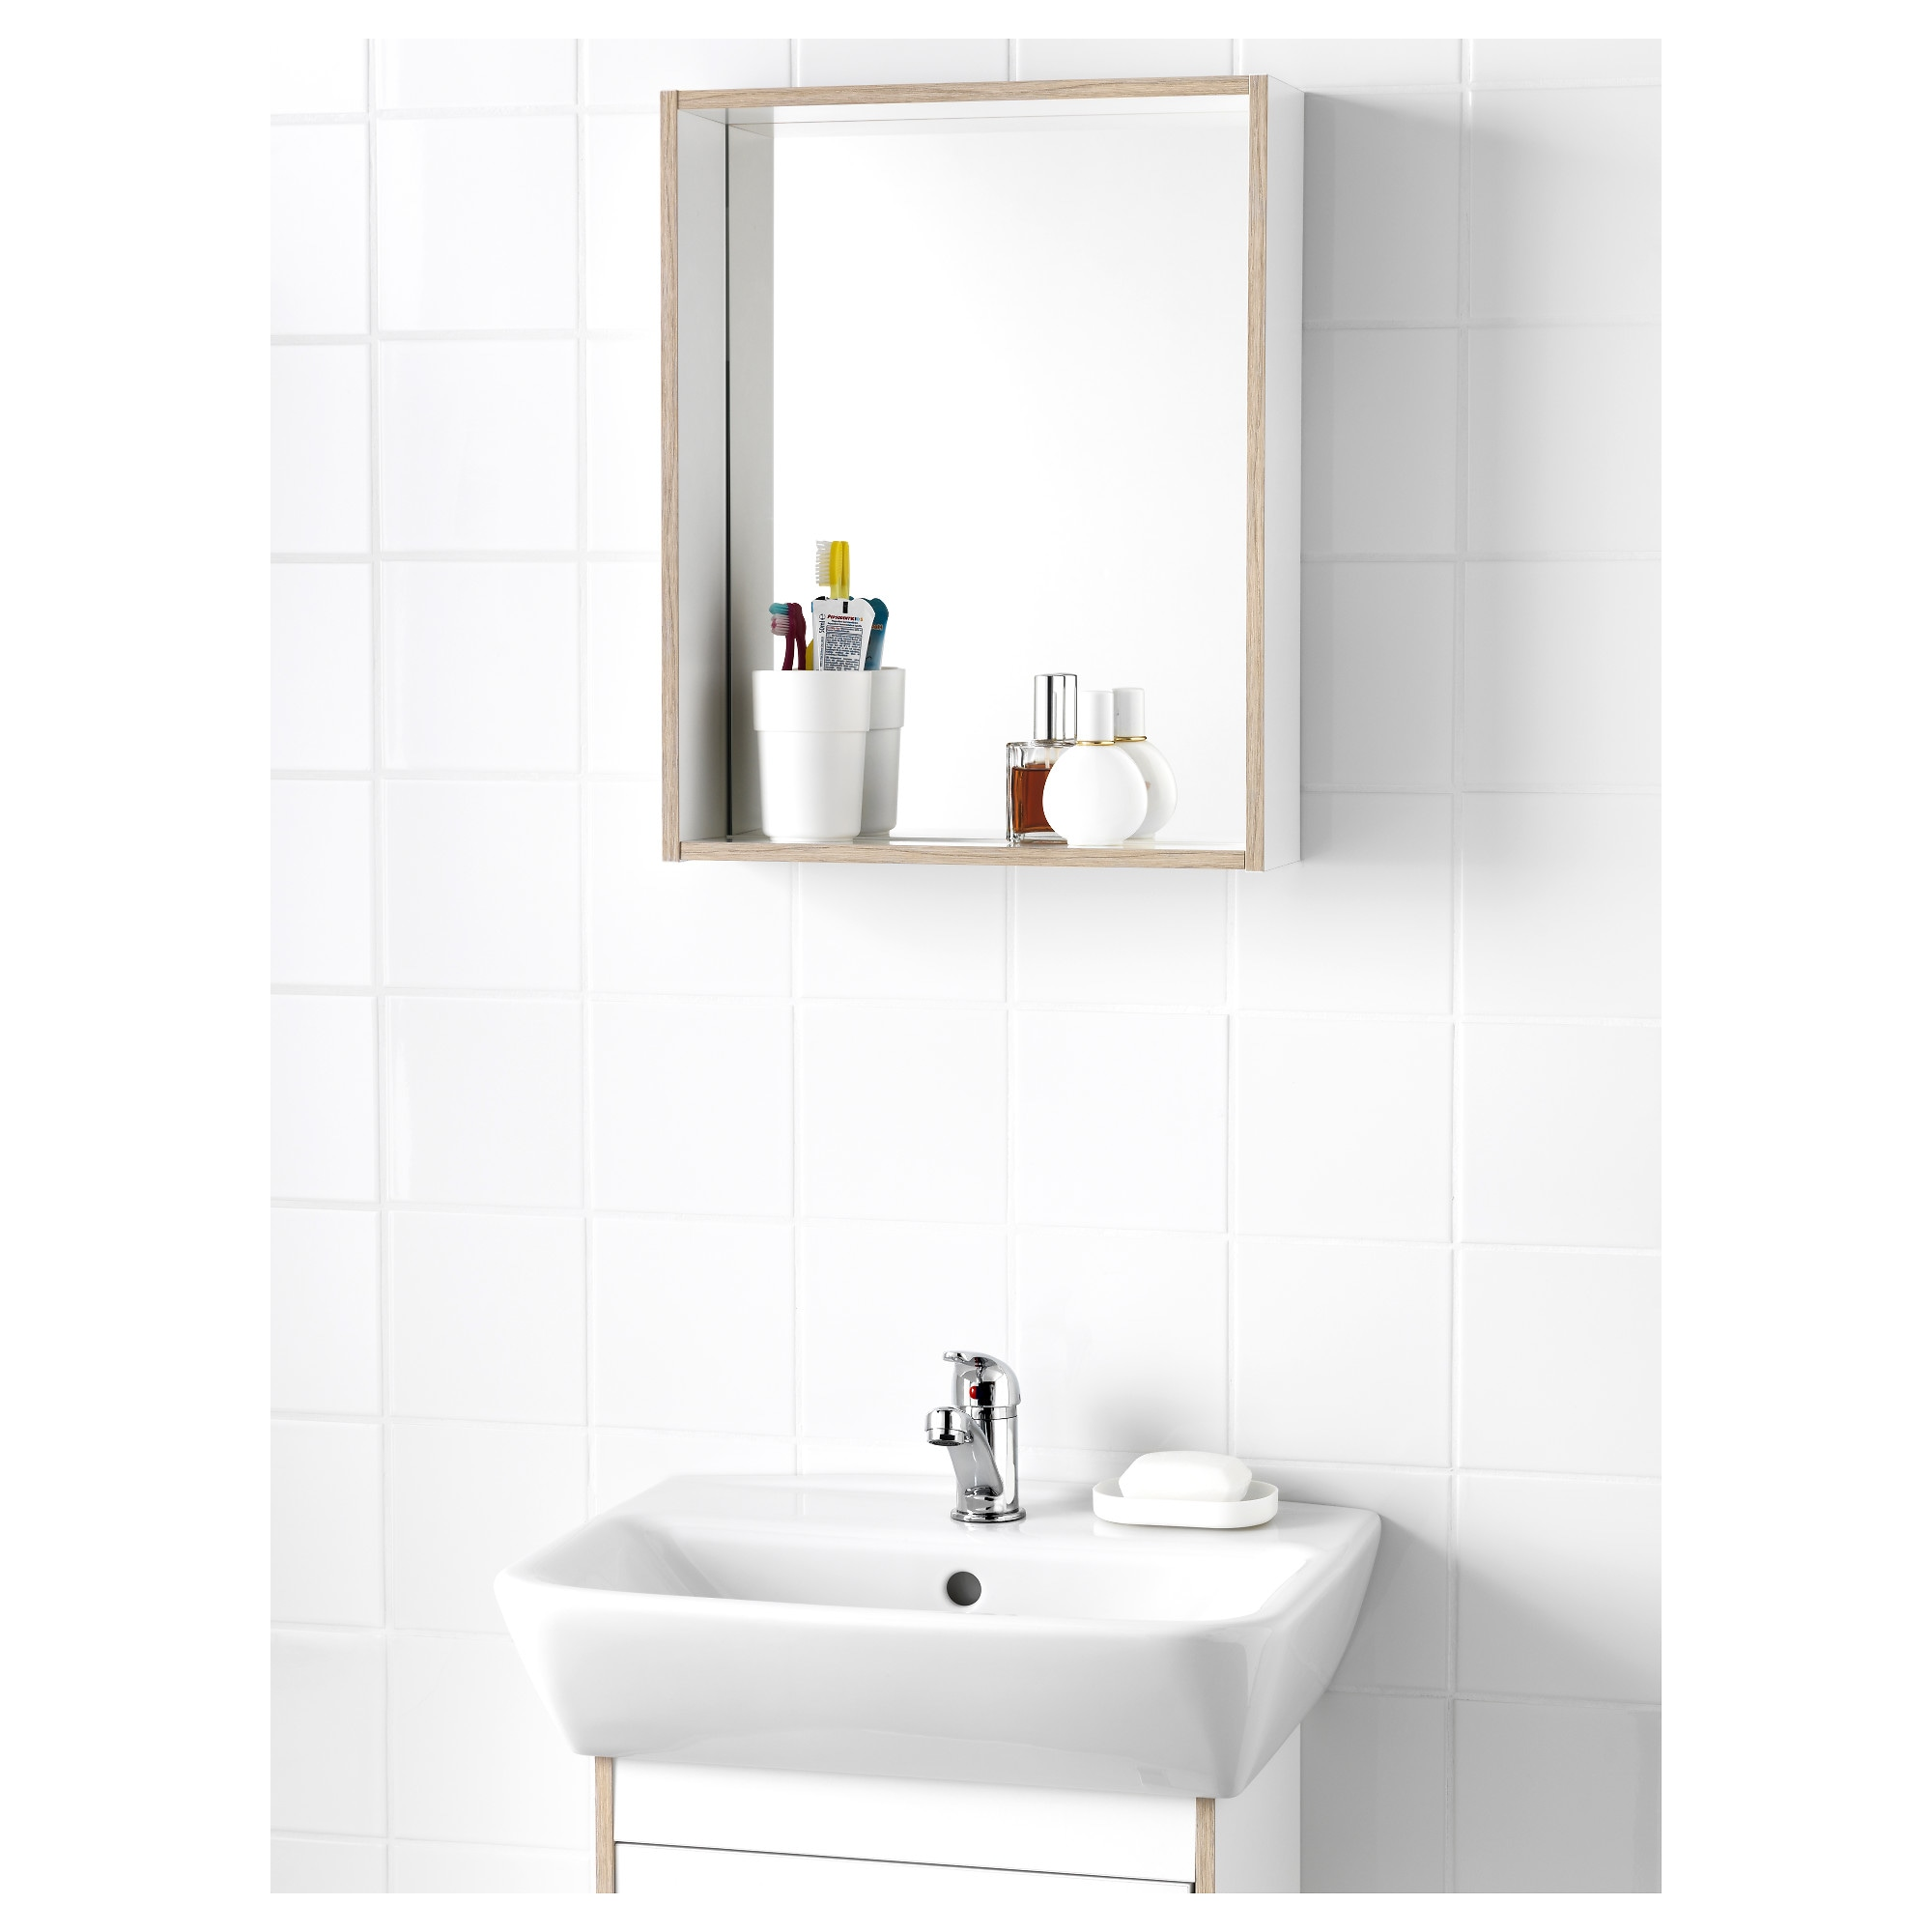 TYNGEN Mirror With Shelf